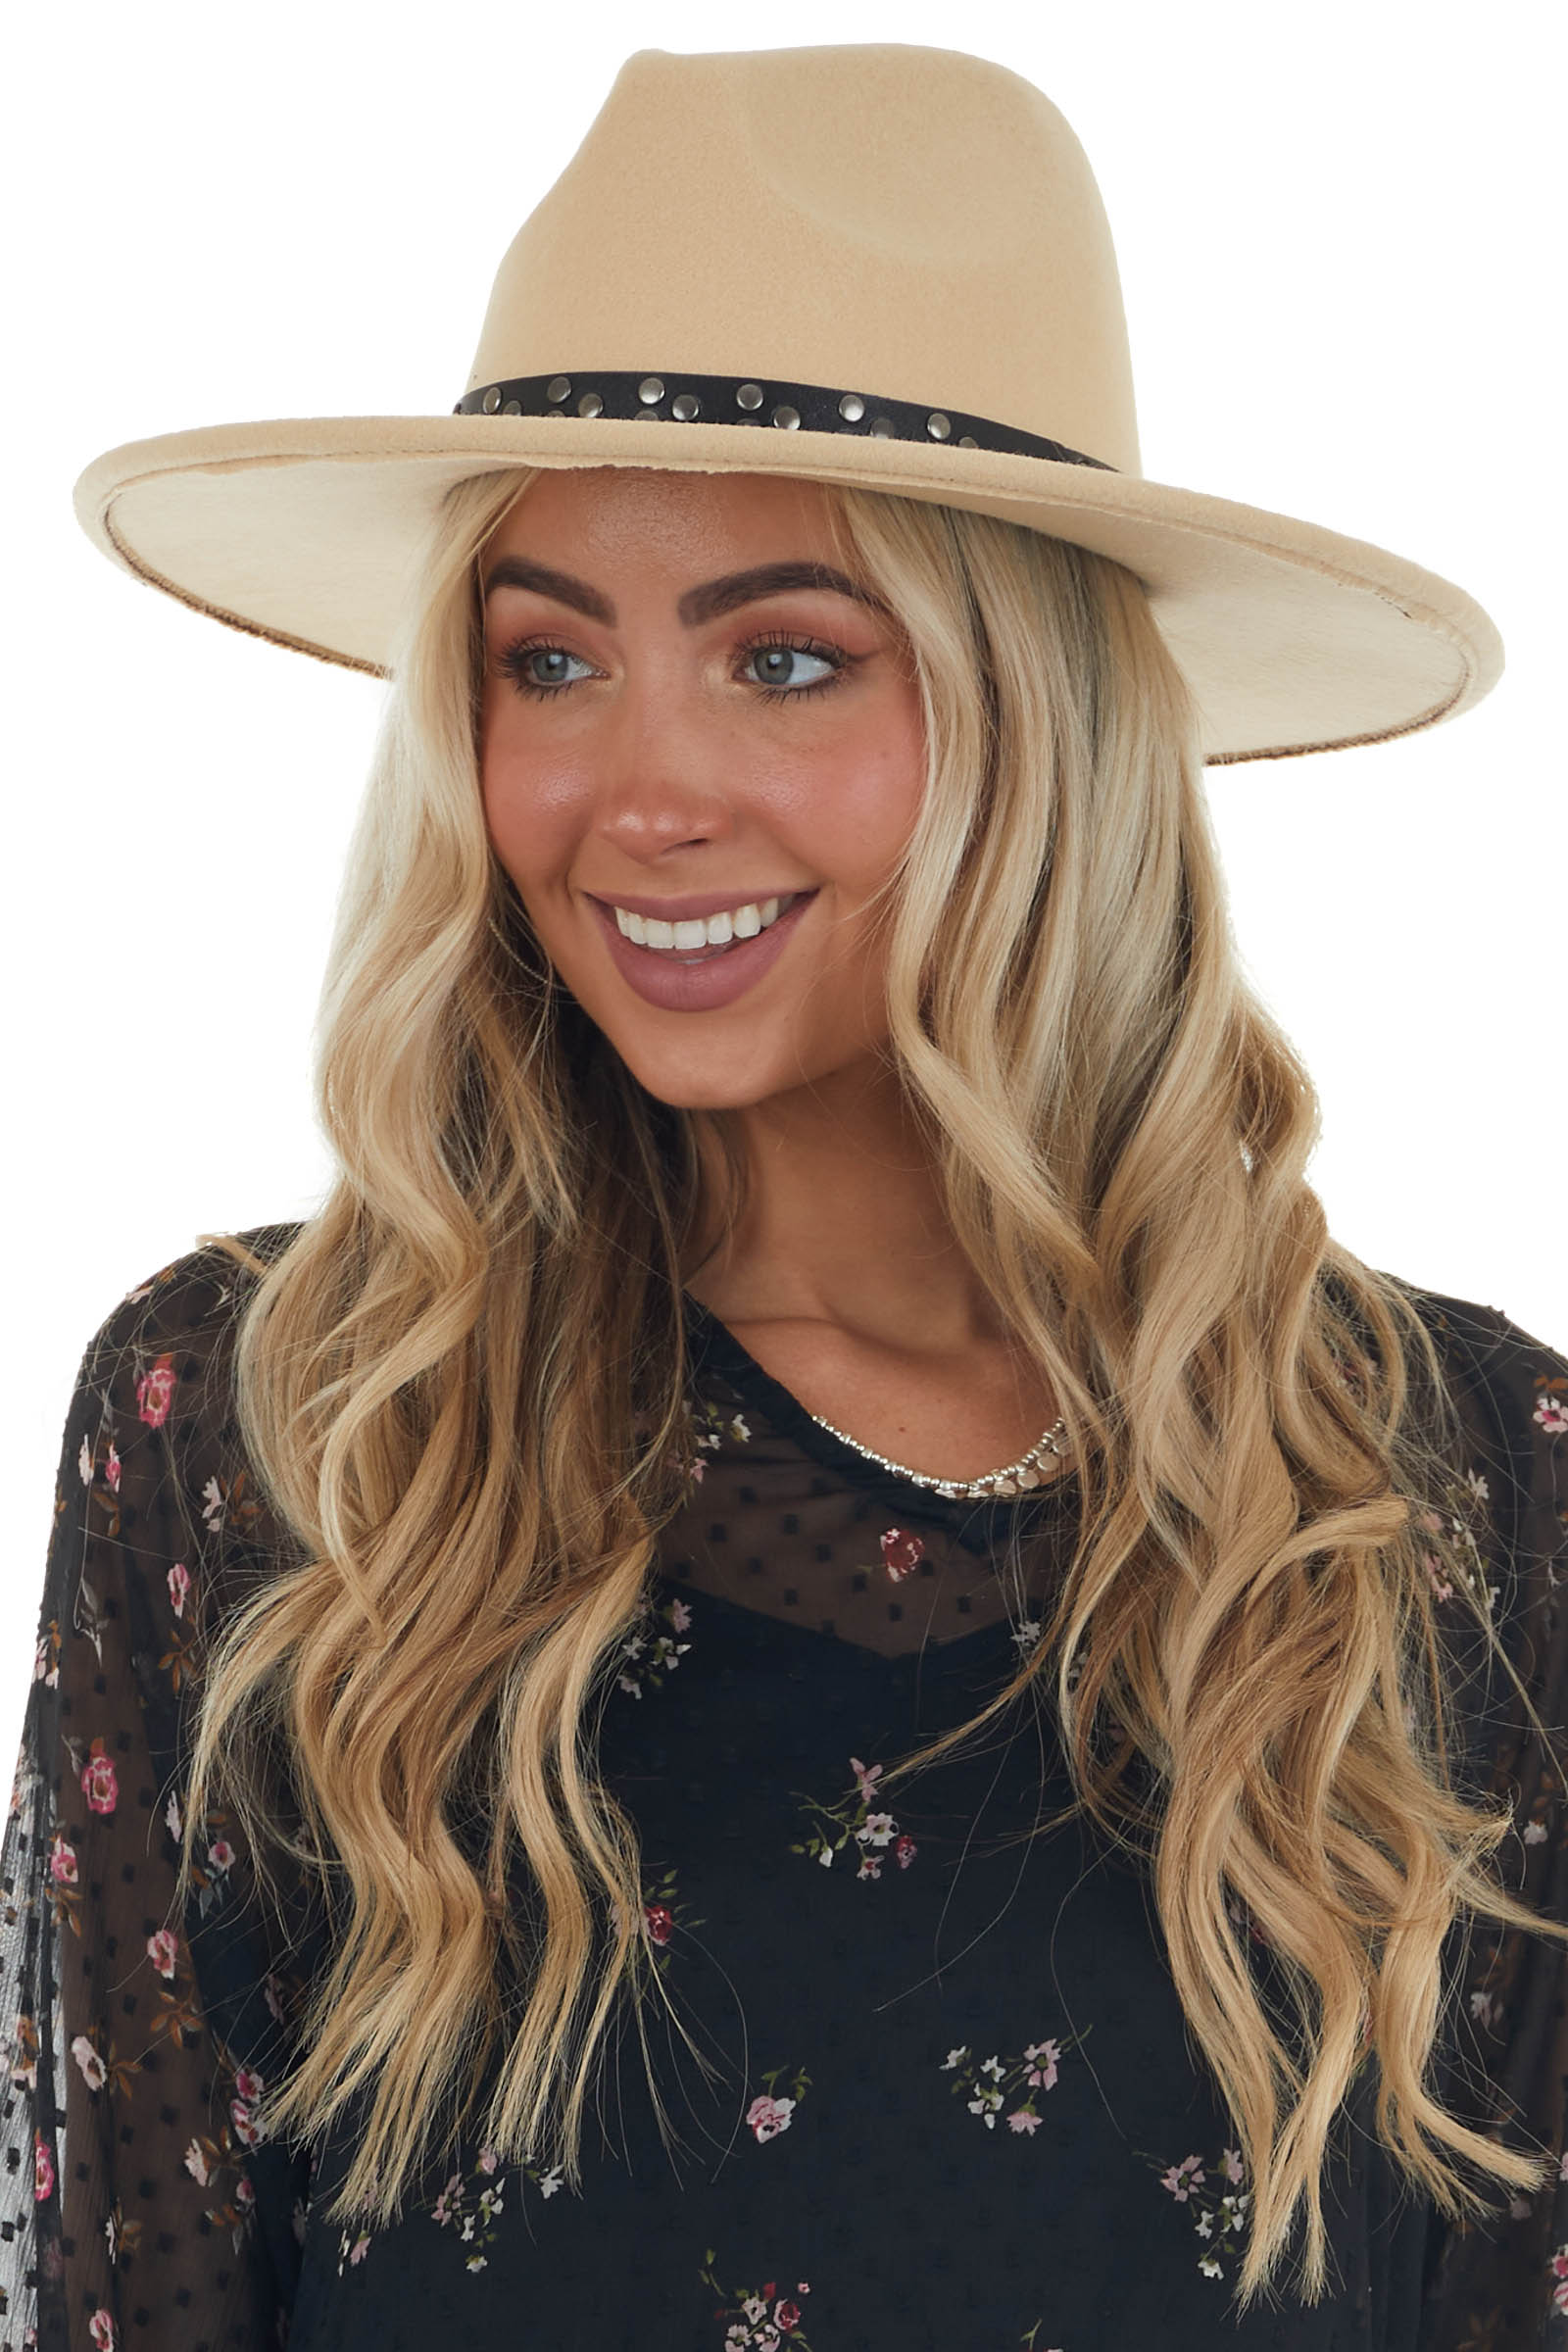 Sand Felt Wide Brim Hat with Studded Band